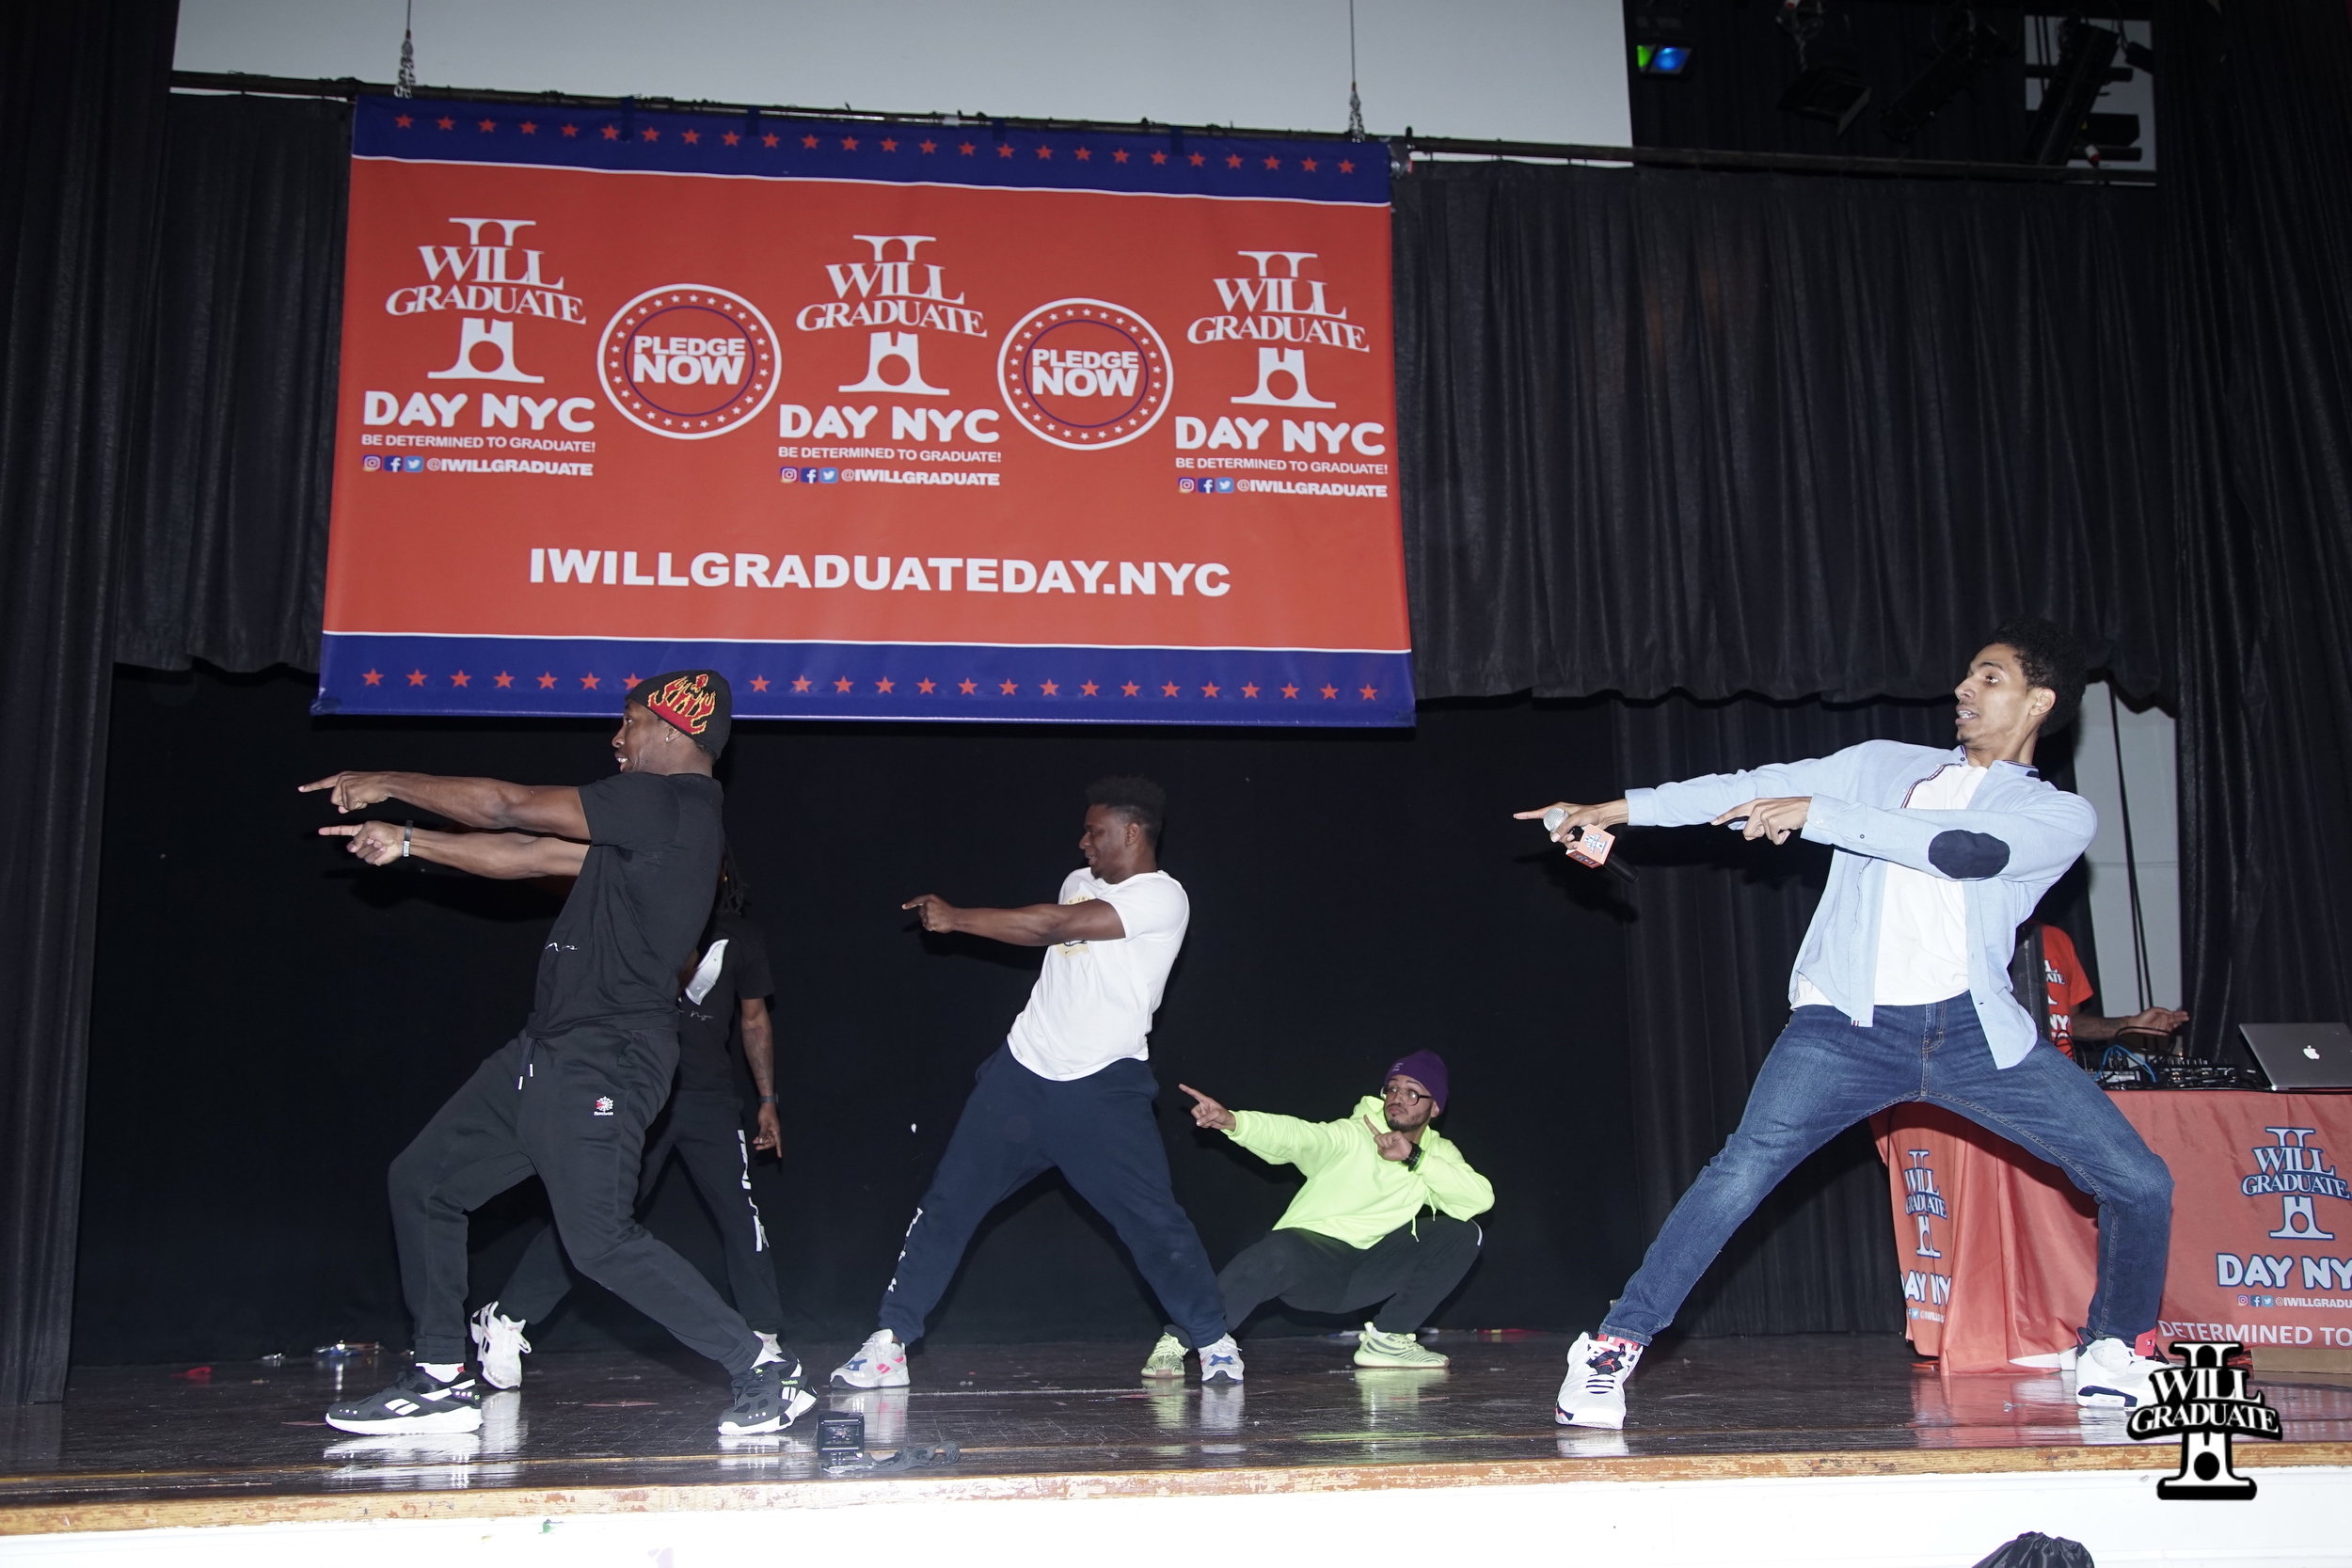 Actor and Performer Arnstar and Waffle NYC perform at I WILL GRADUATE DAY